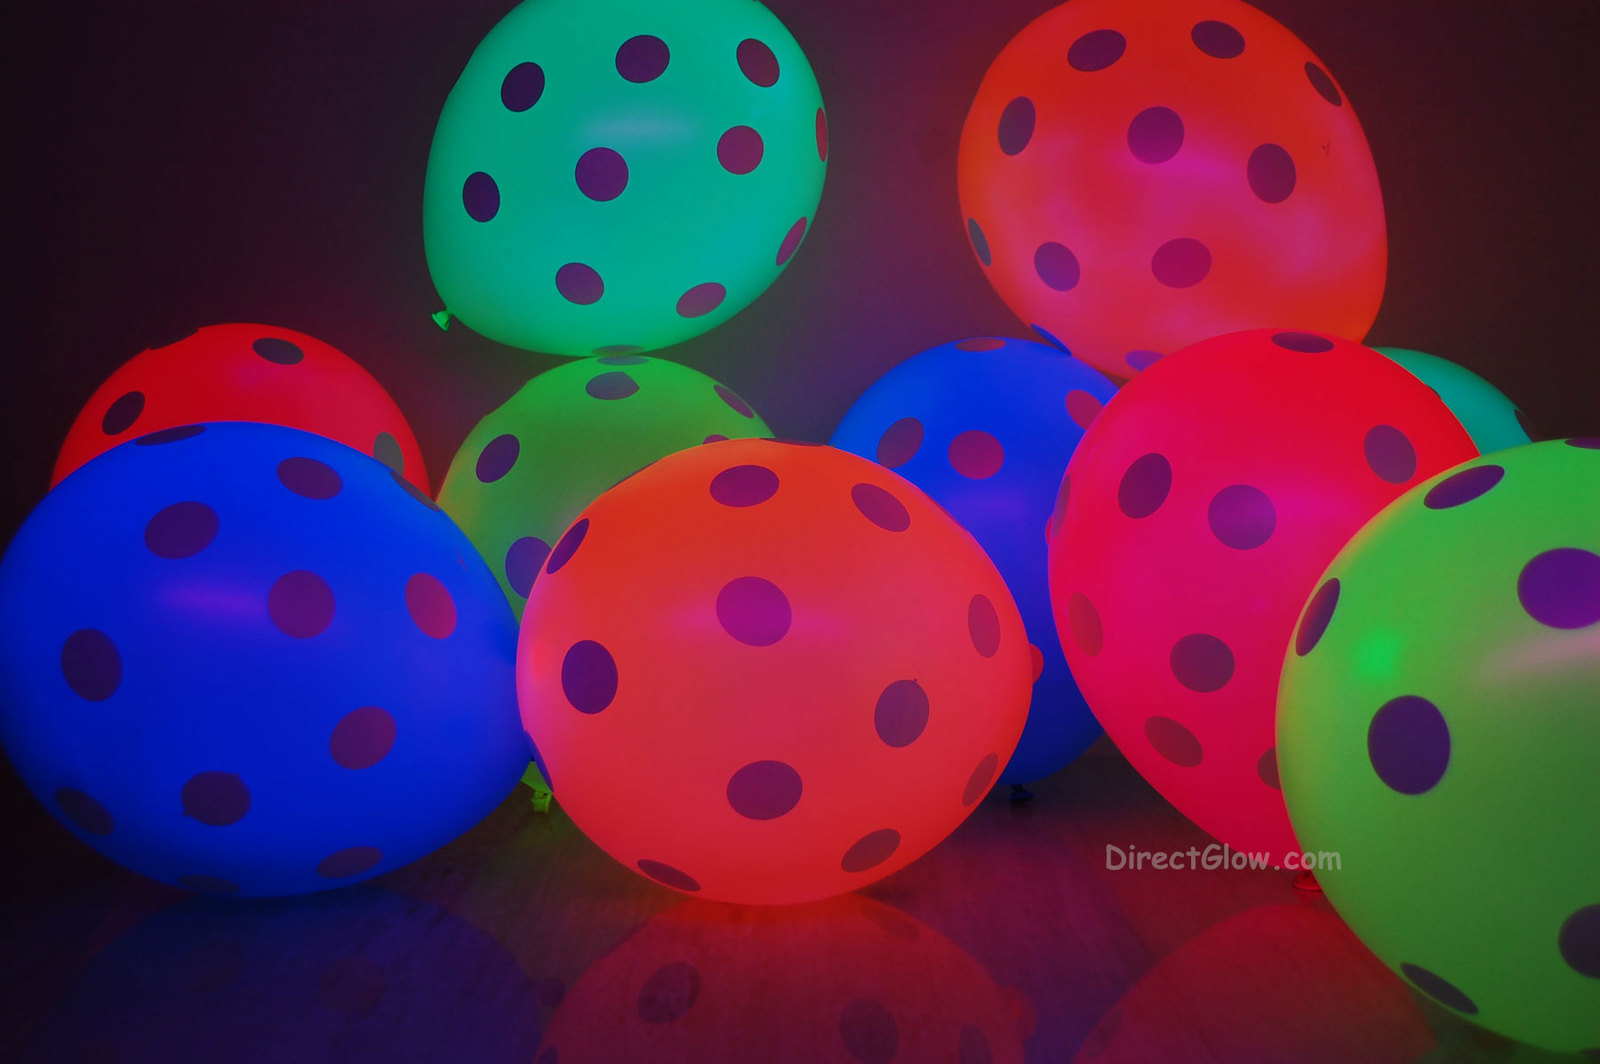 Neon uv blacklight polka dot balloons3